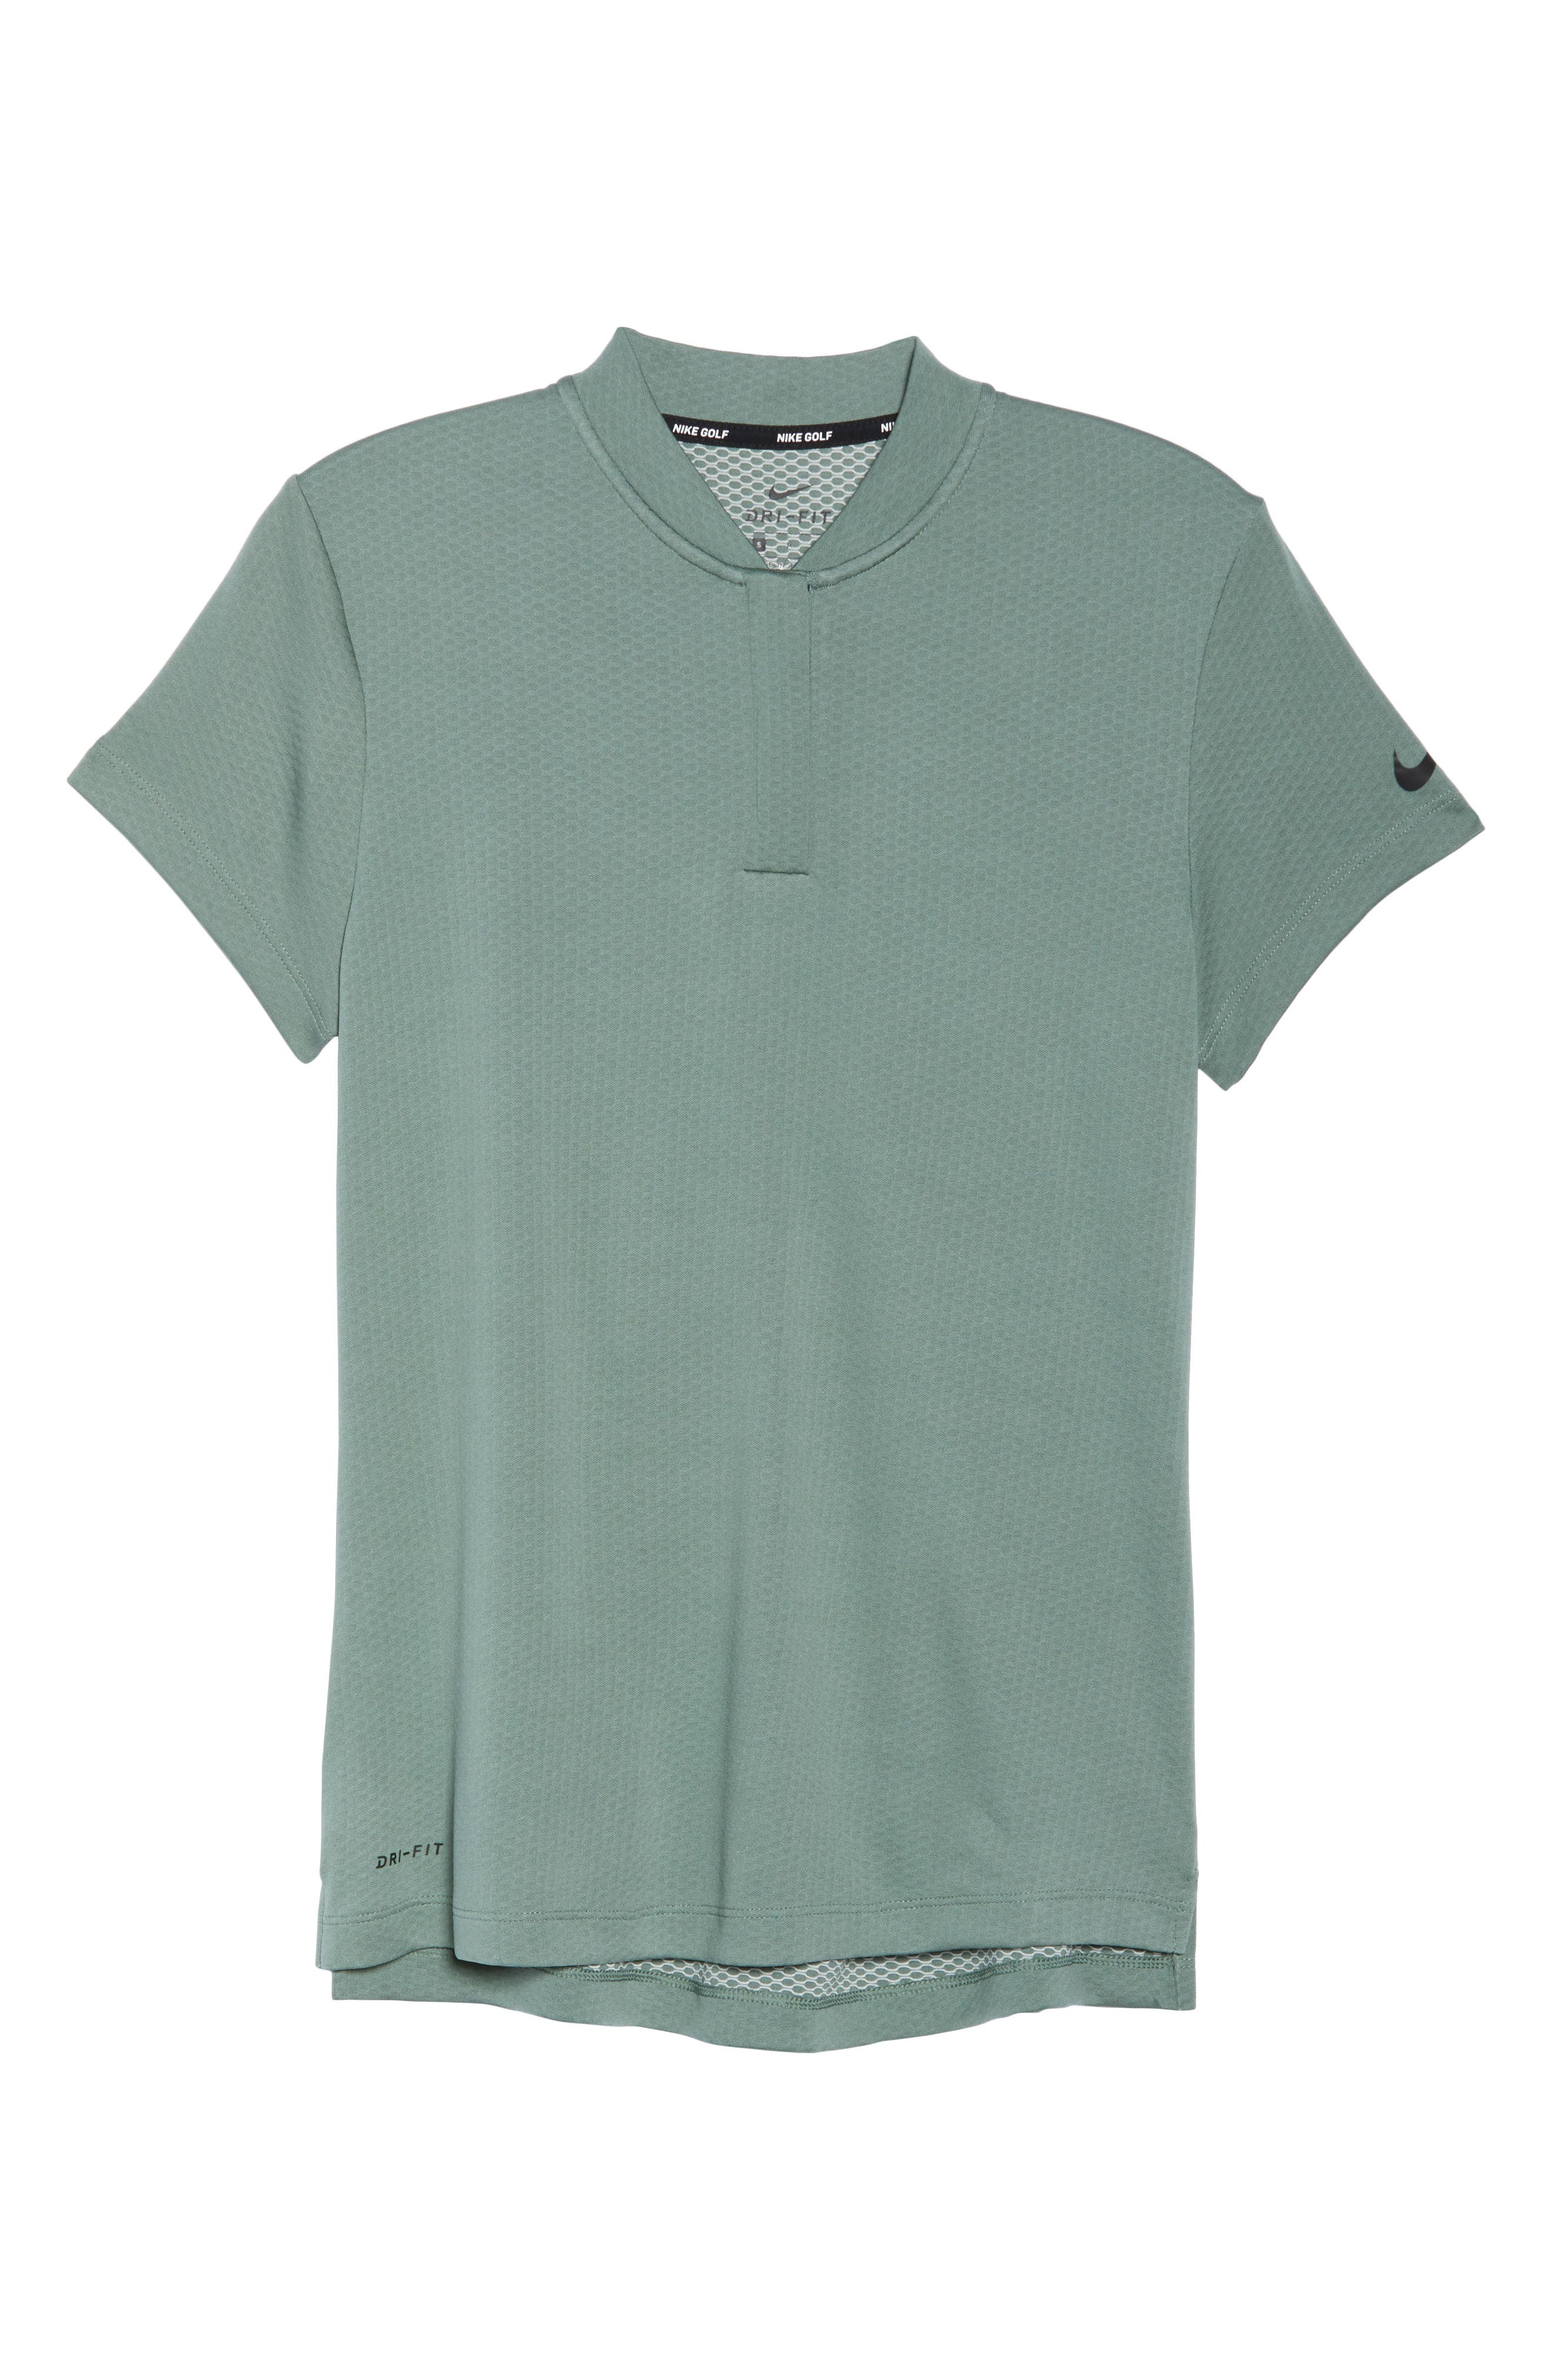 Dry Gold Polo,                             Alternate thumbnail 7, color,                             Clay Green/ Black